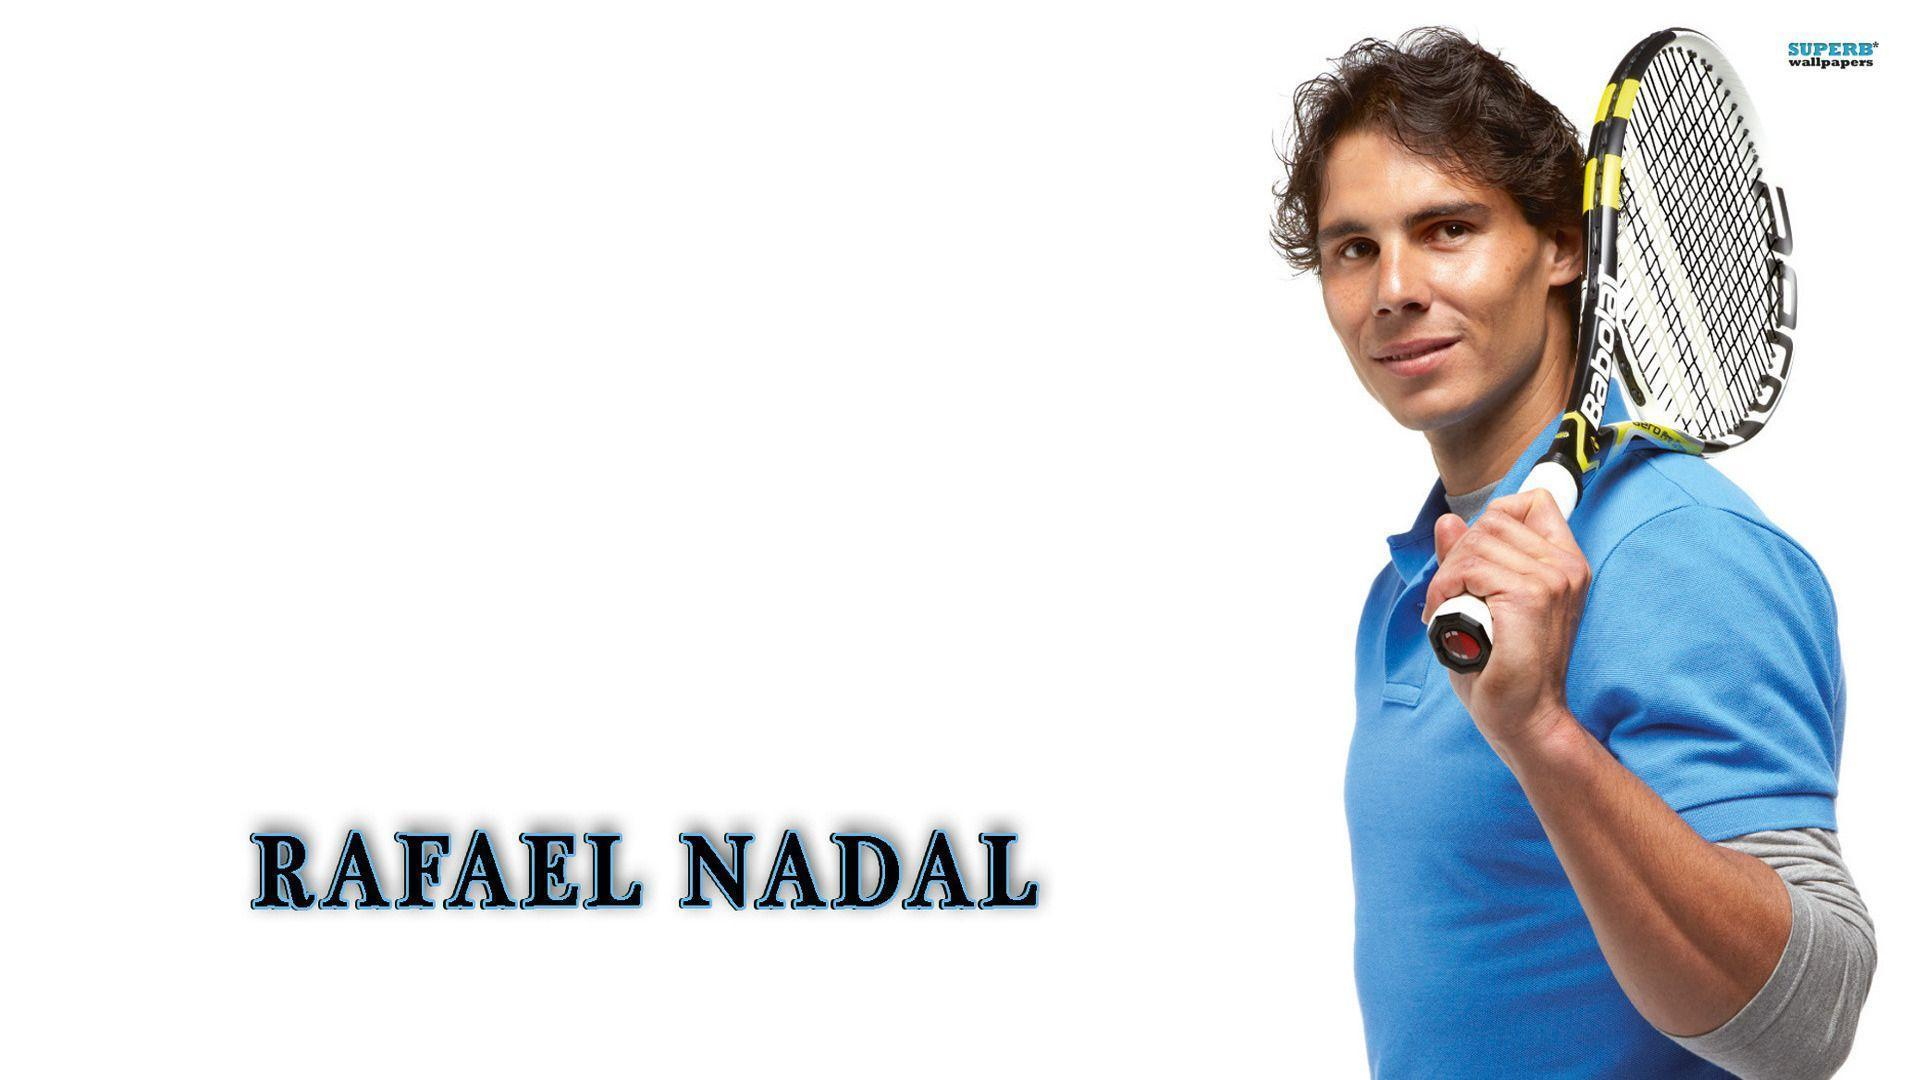 Rafael Nadal Wallpapers, Pictures, Image